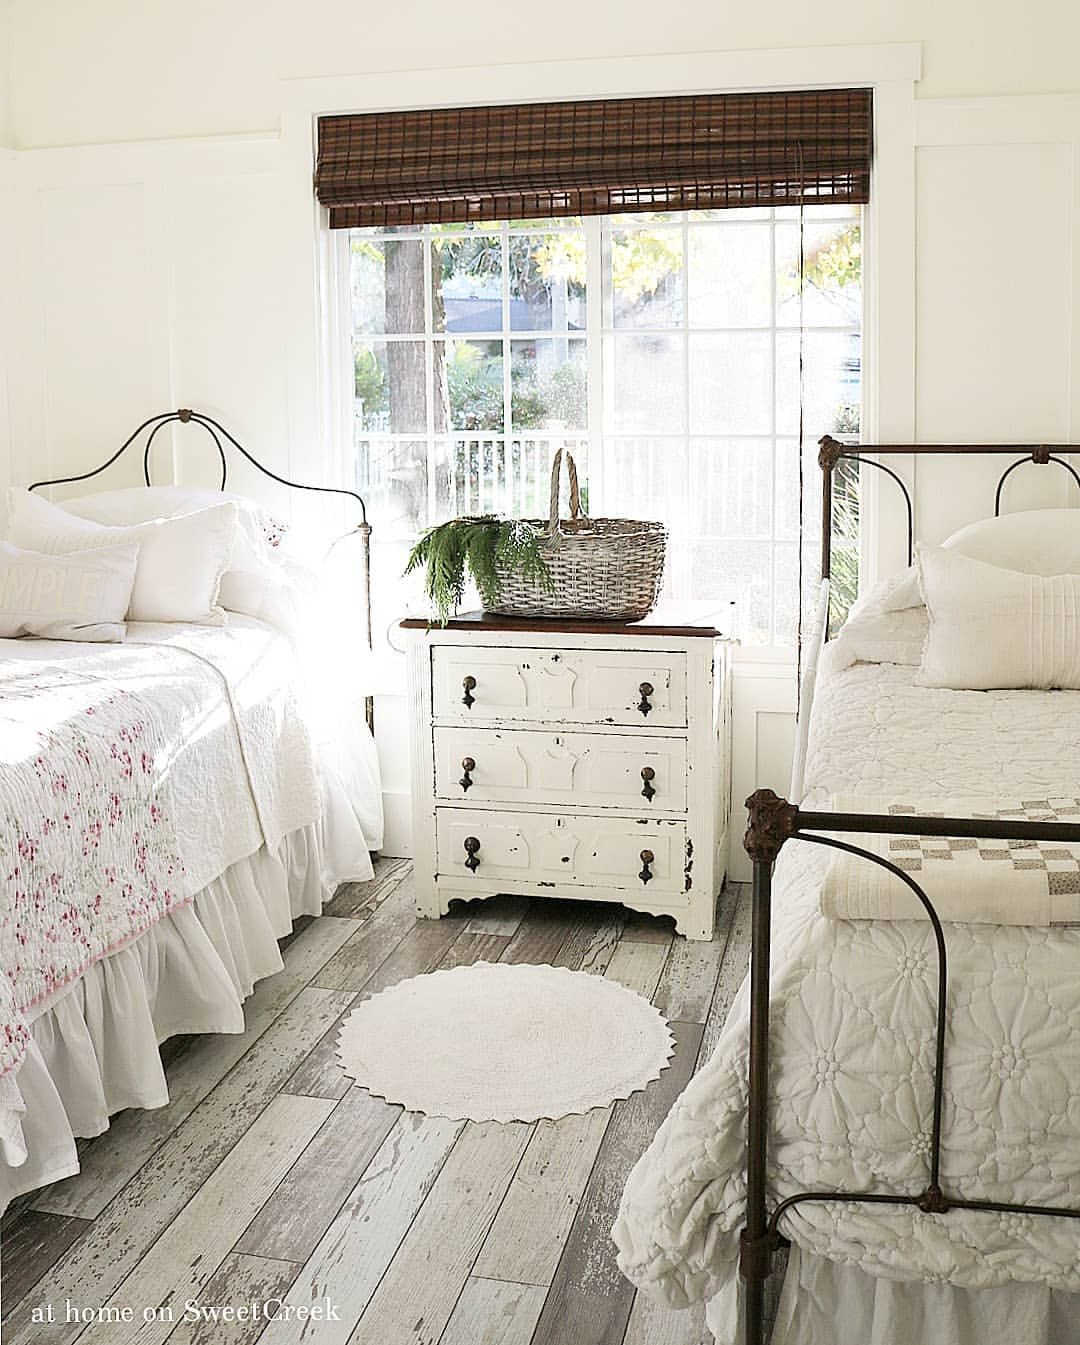 Cottage farmhouse bedroom shabby chic at home on